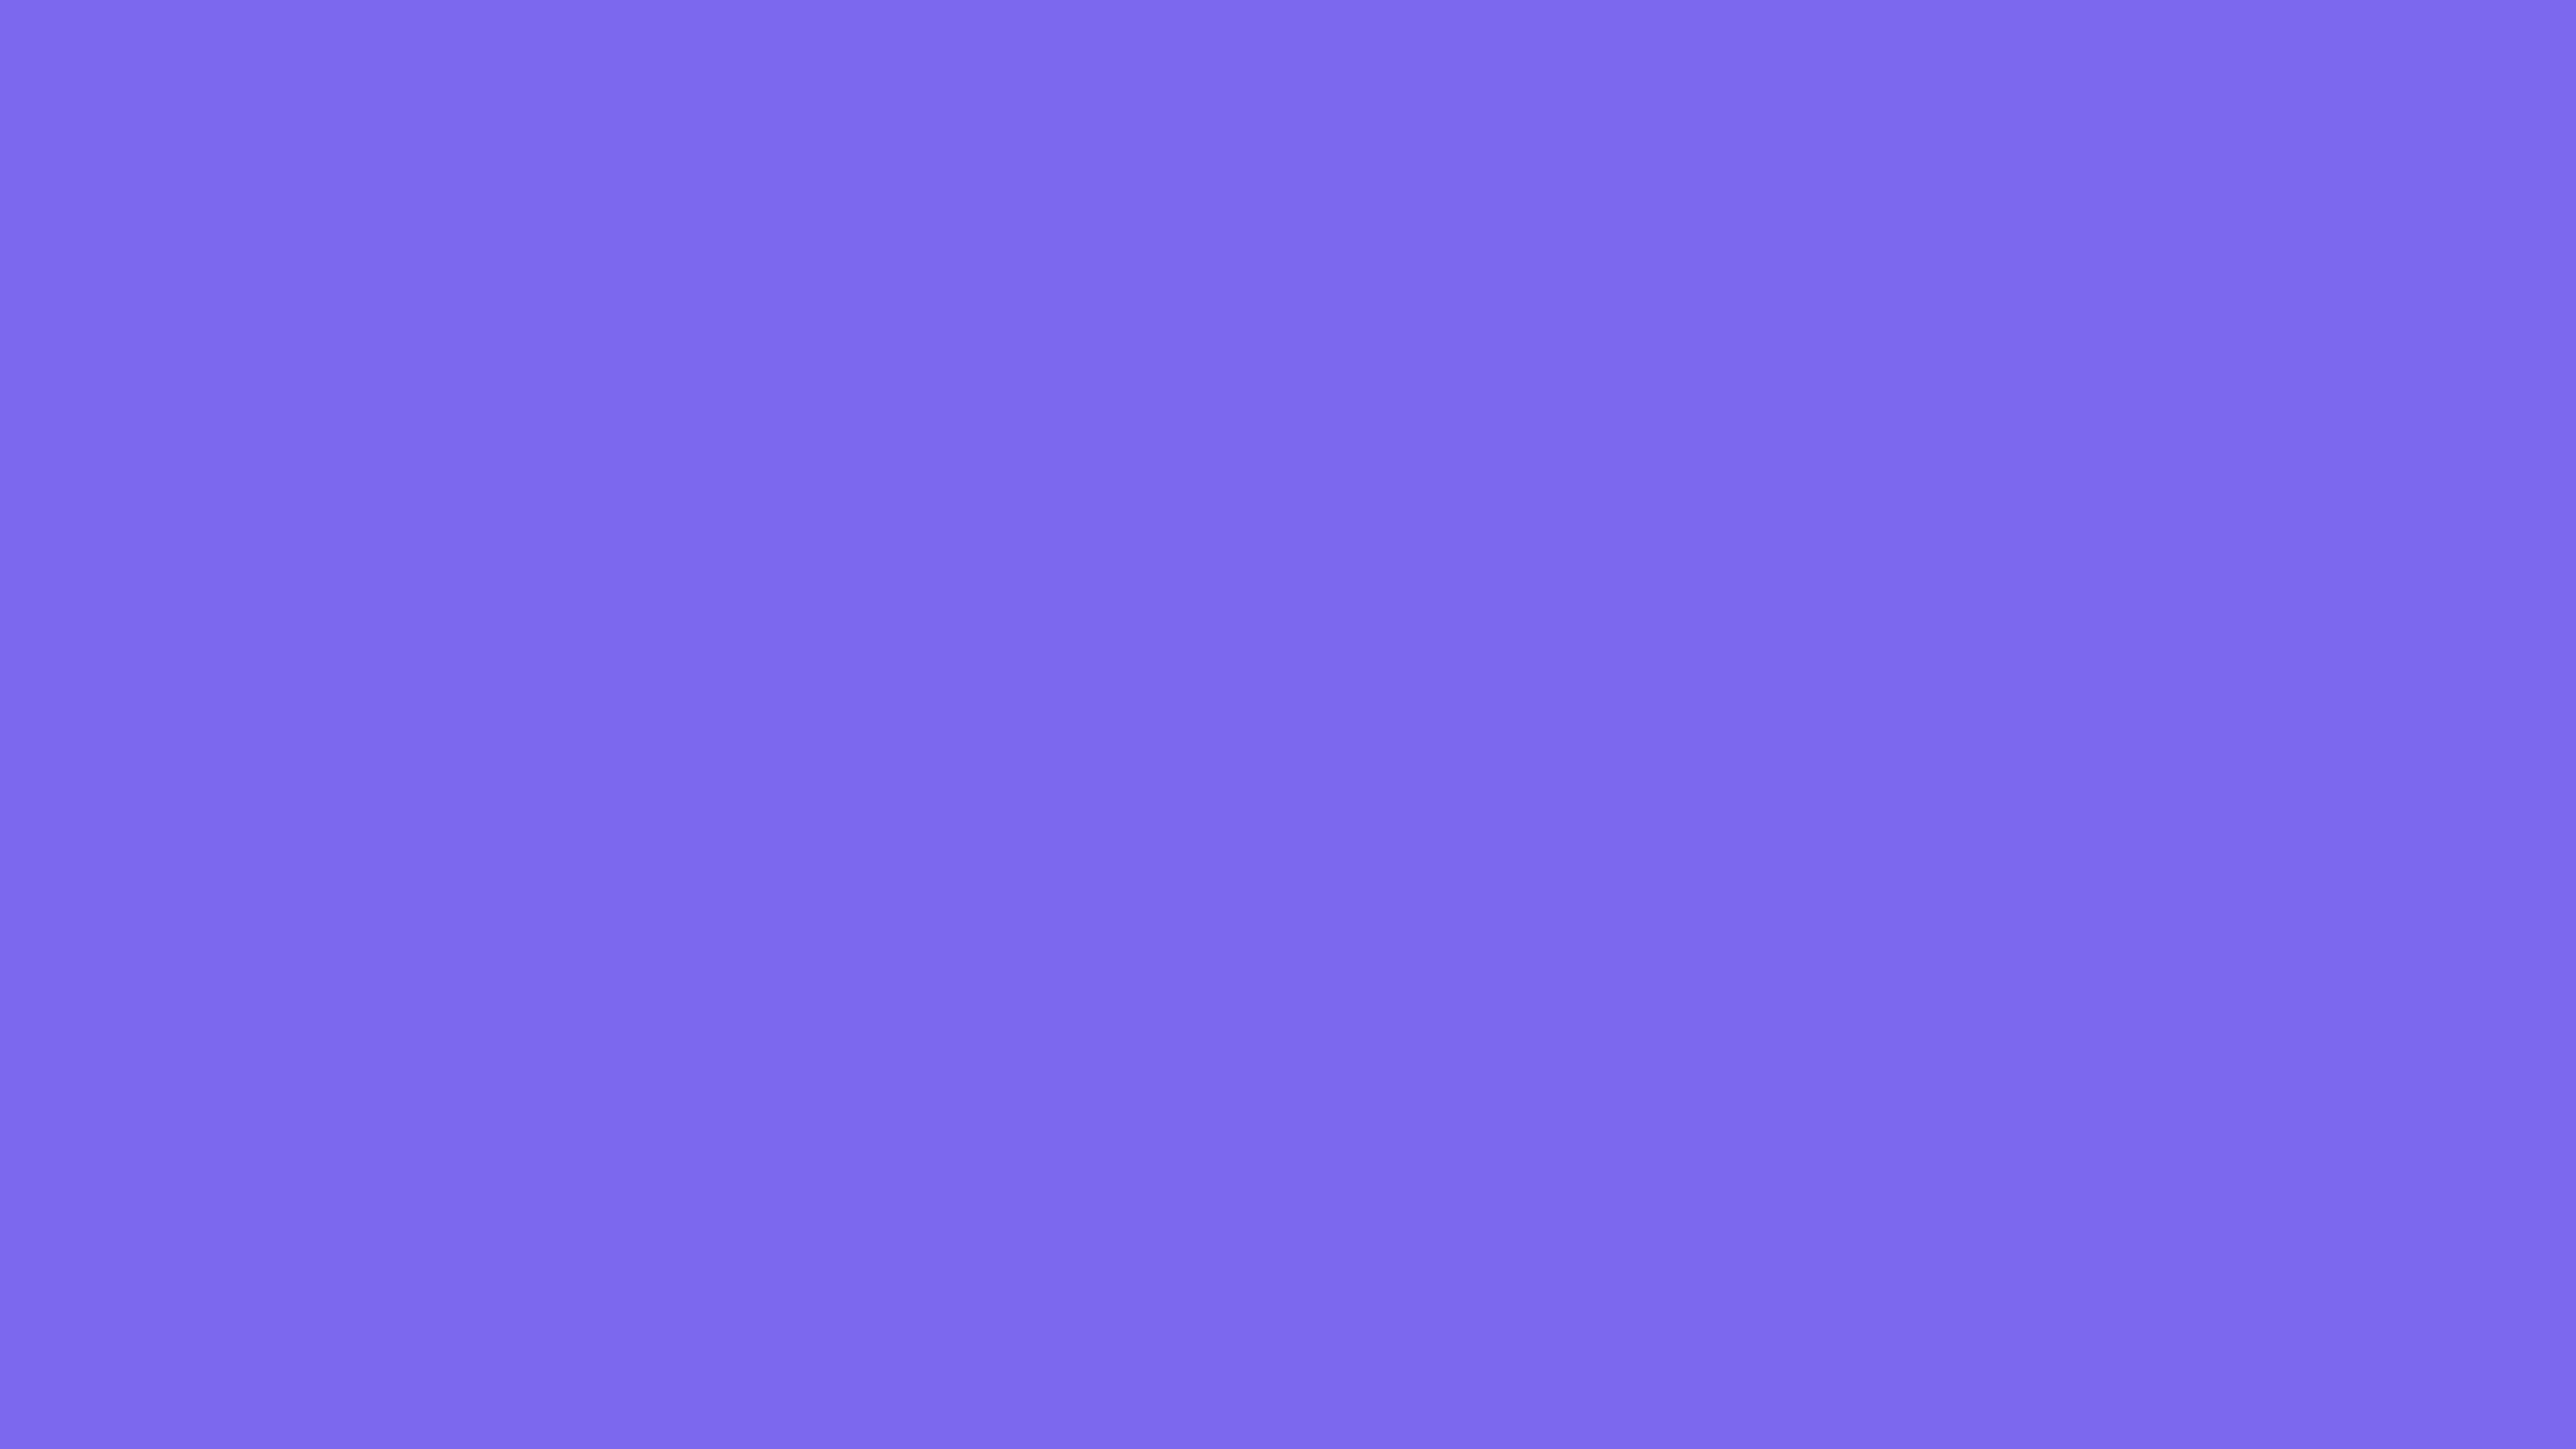 3840x2160 Medium Slate Blue Solid Color Background